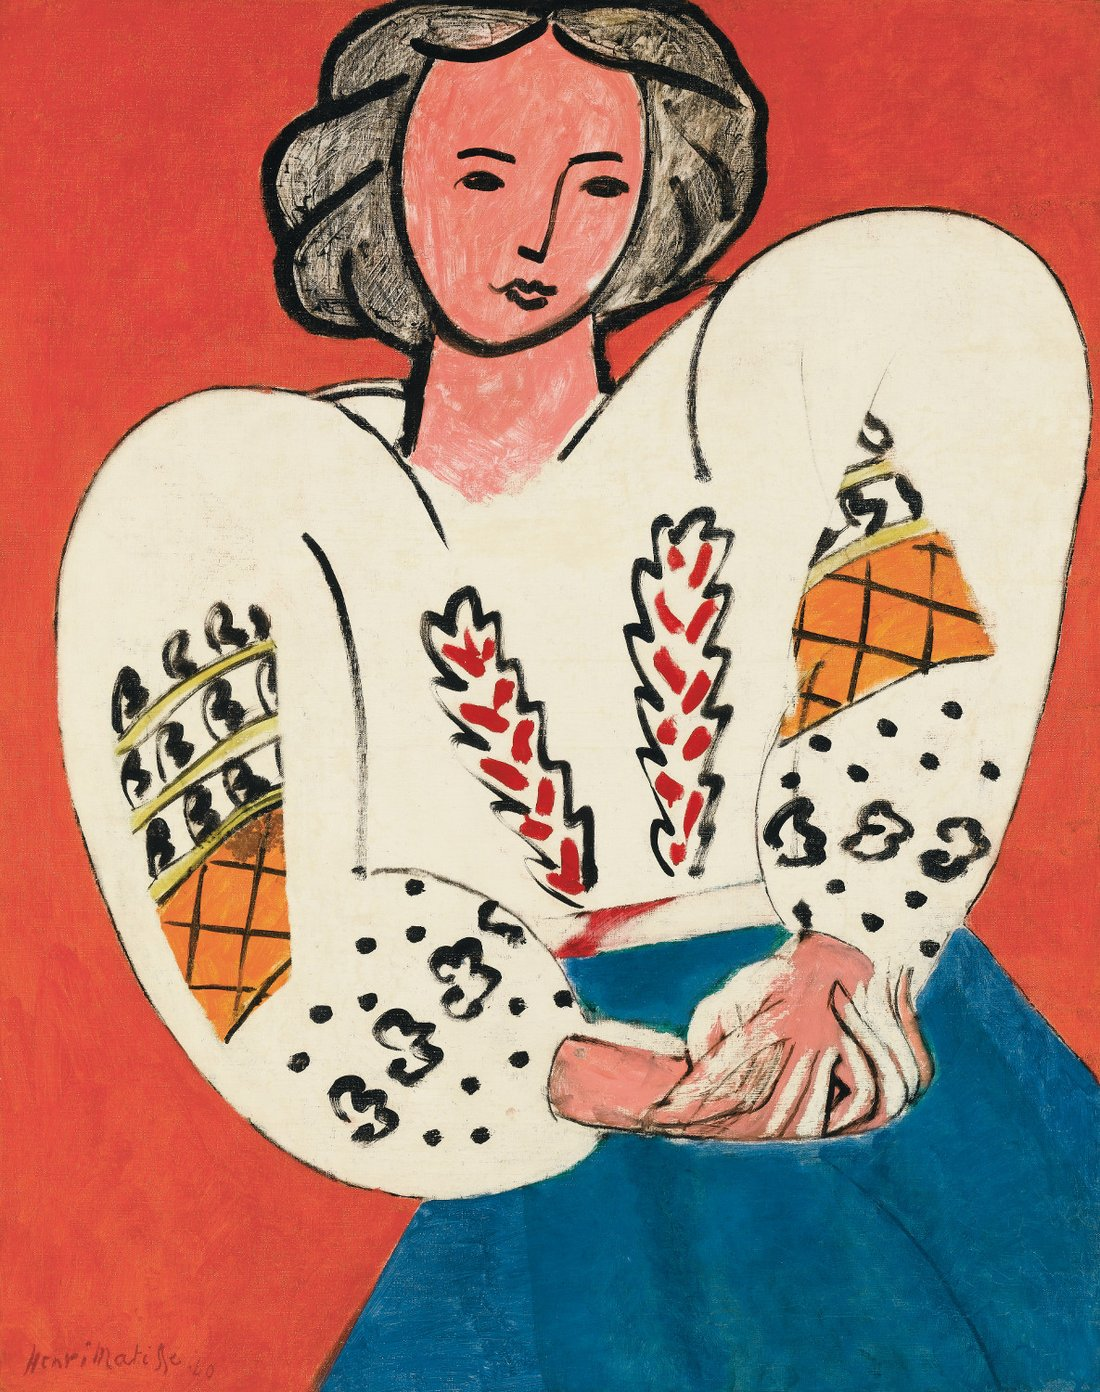 Henri Matisse, « La Blouse roumaine », avril 1940